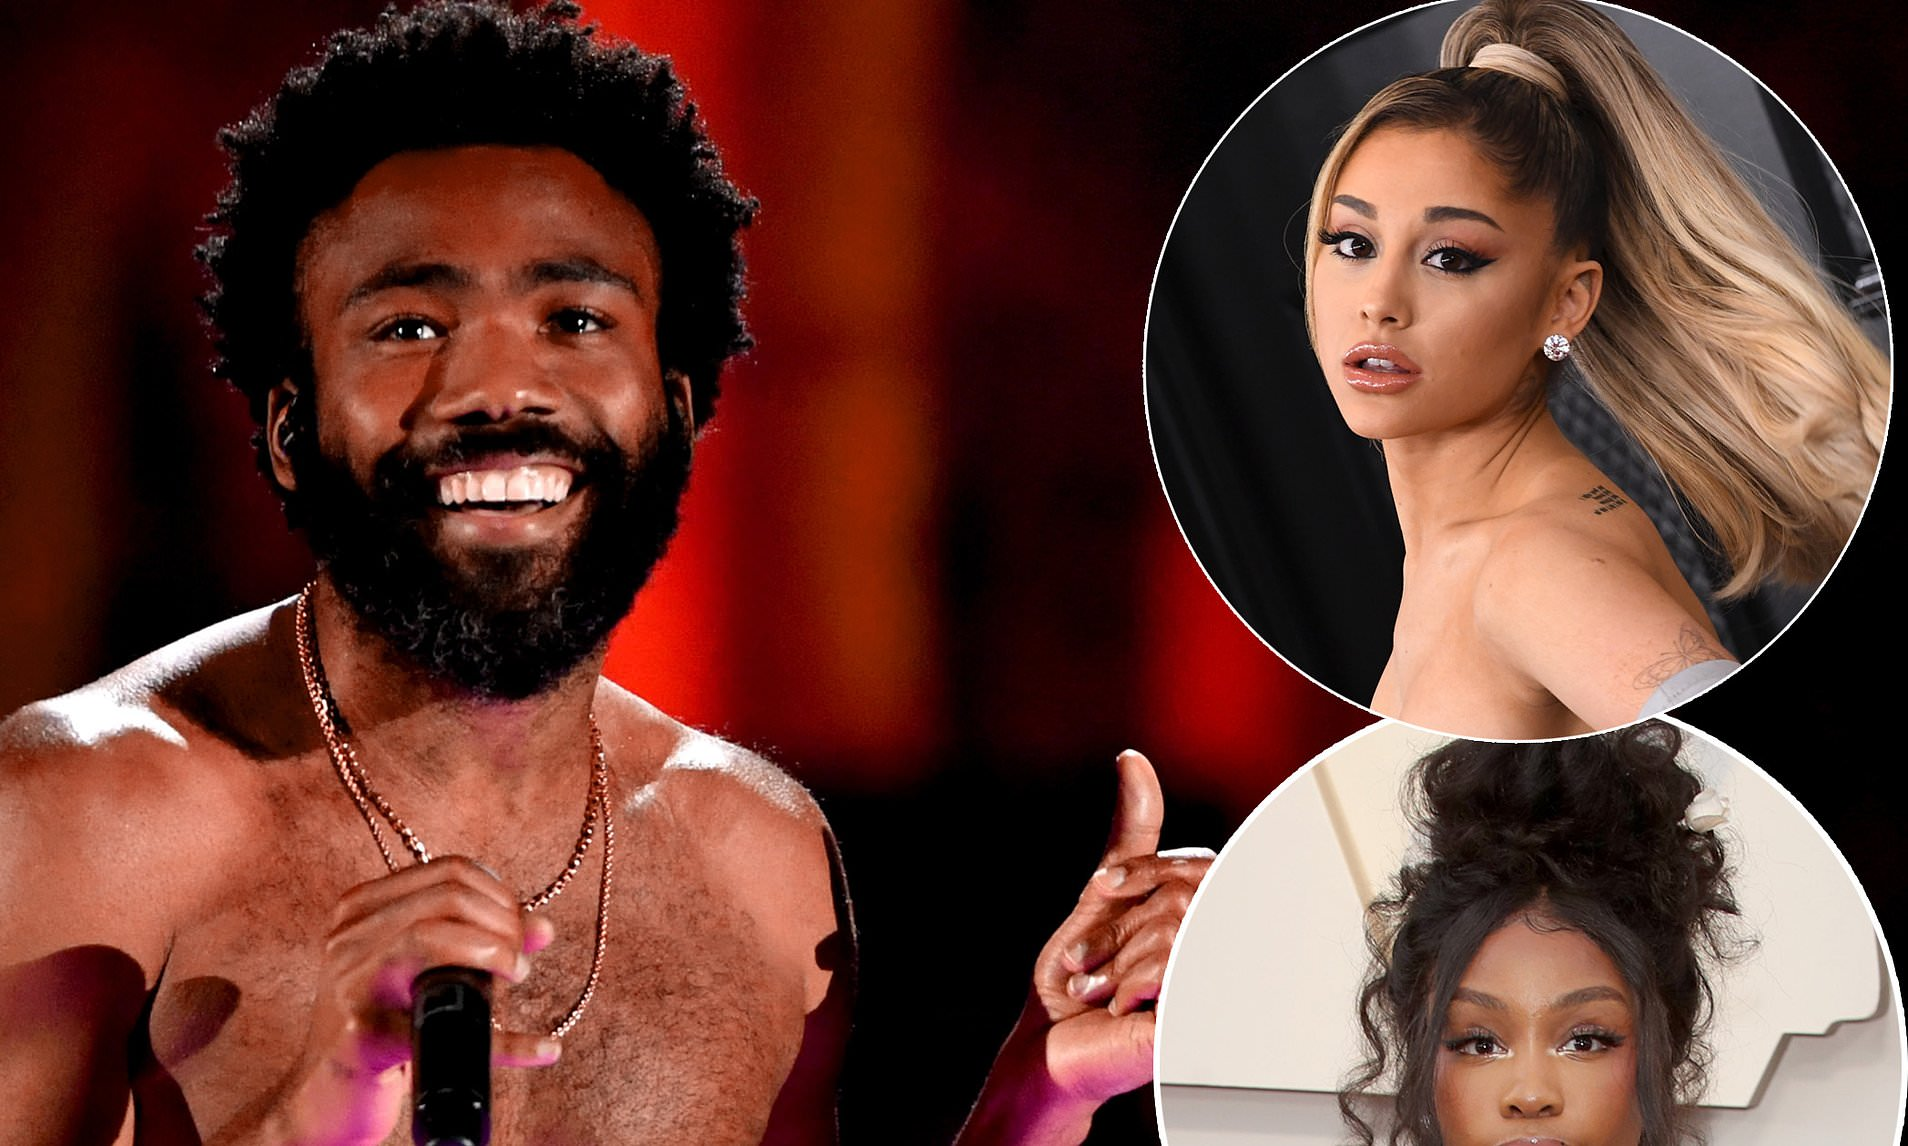 Childish Gambino Aka Donald Glover Drops Collection Of Music The